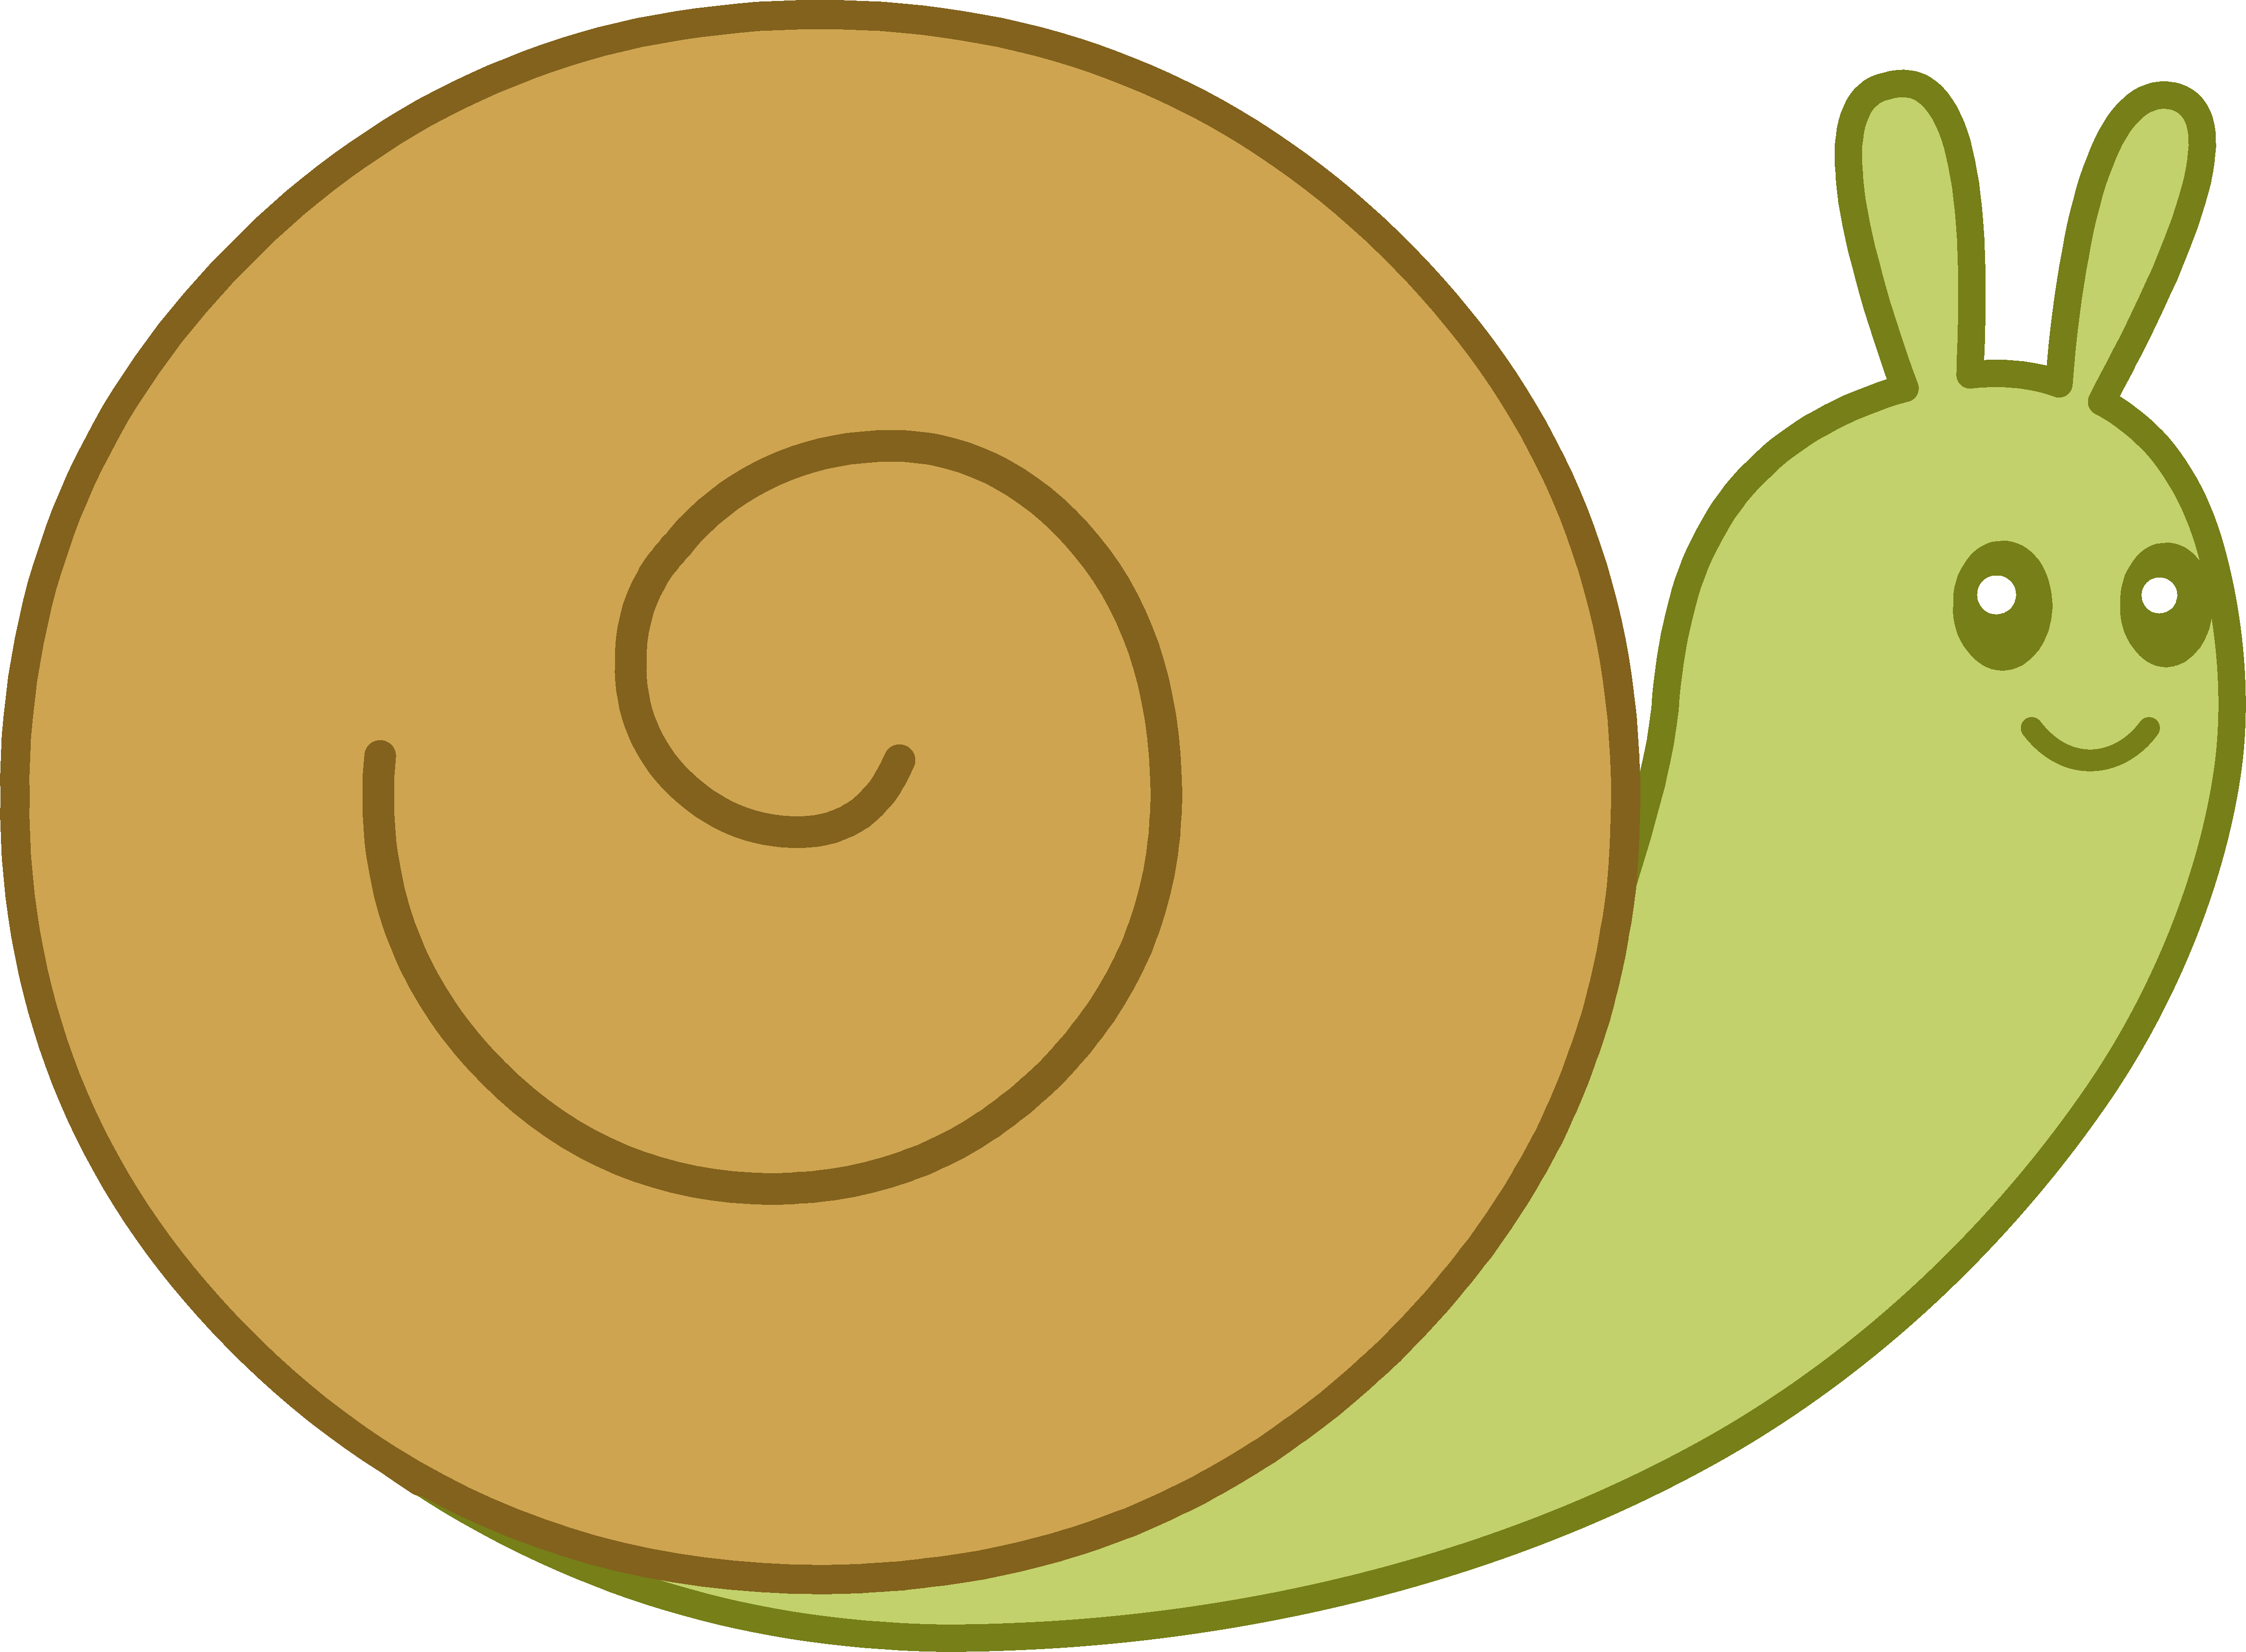 png Cute Brown and Green Snail